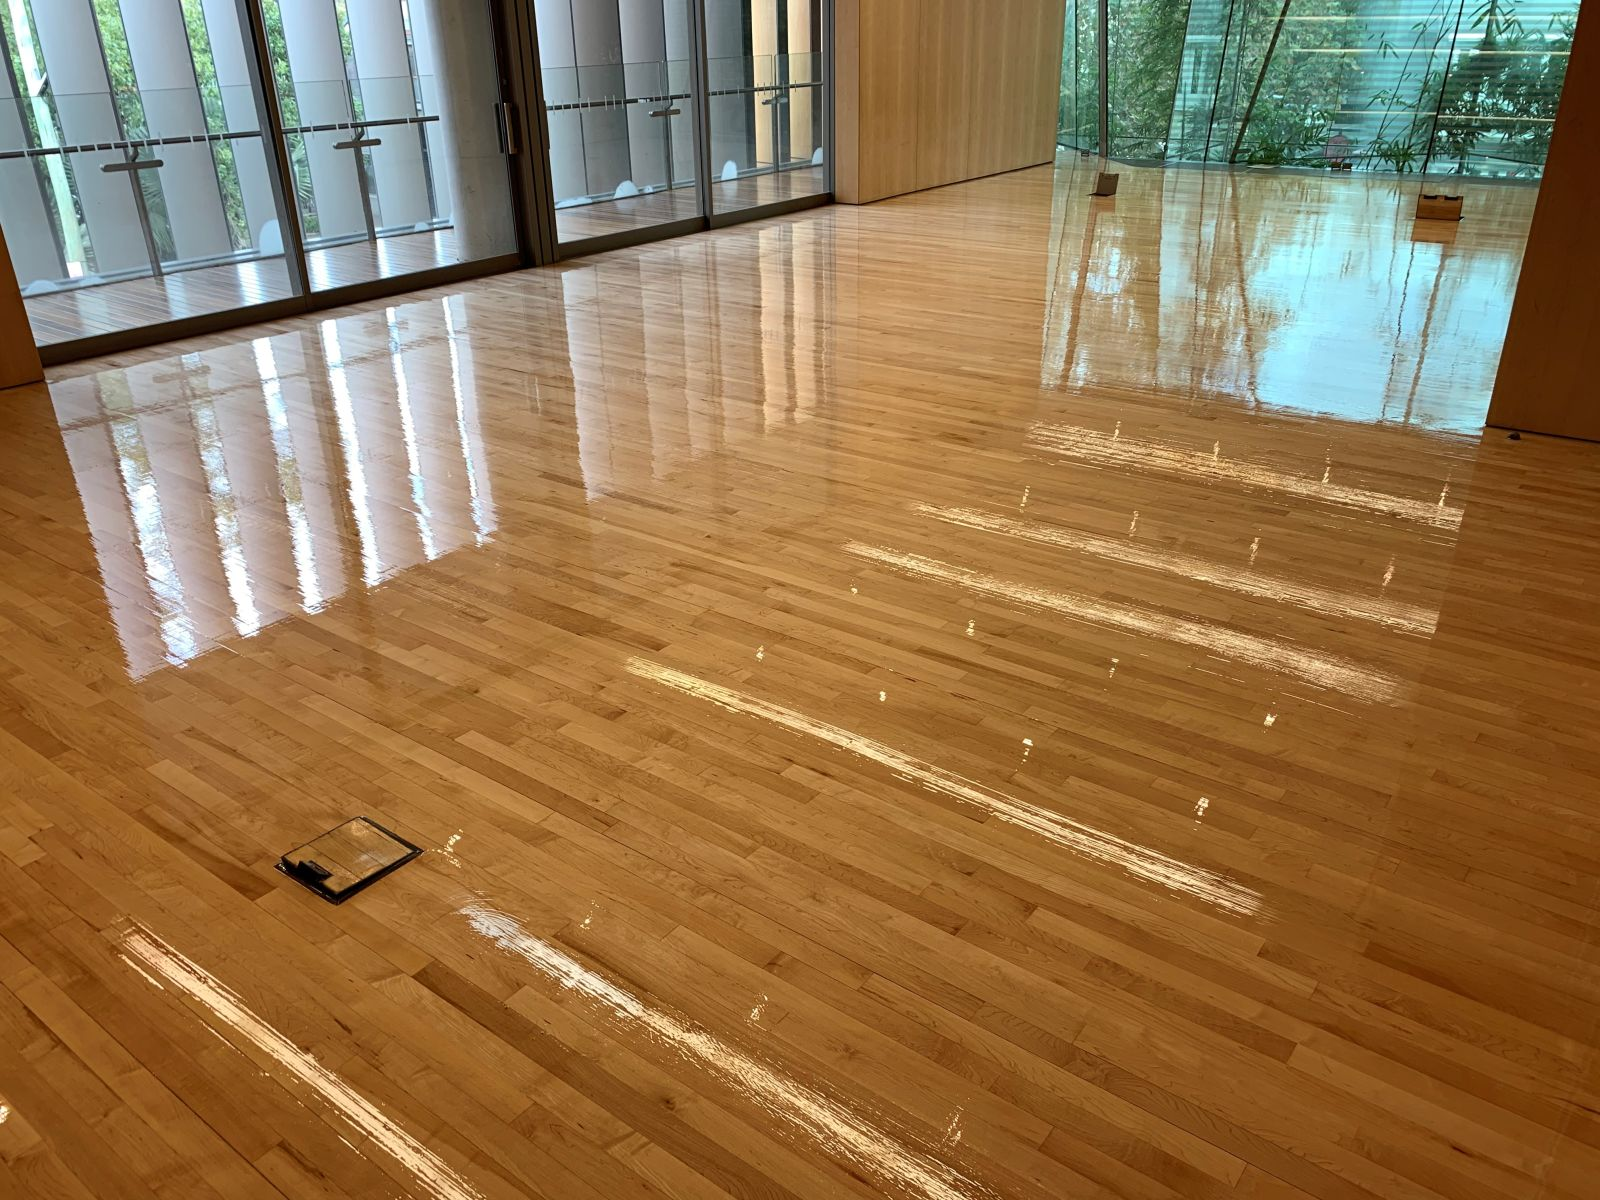 Enhanced Floor Care and Cleaning